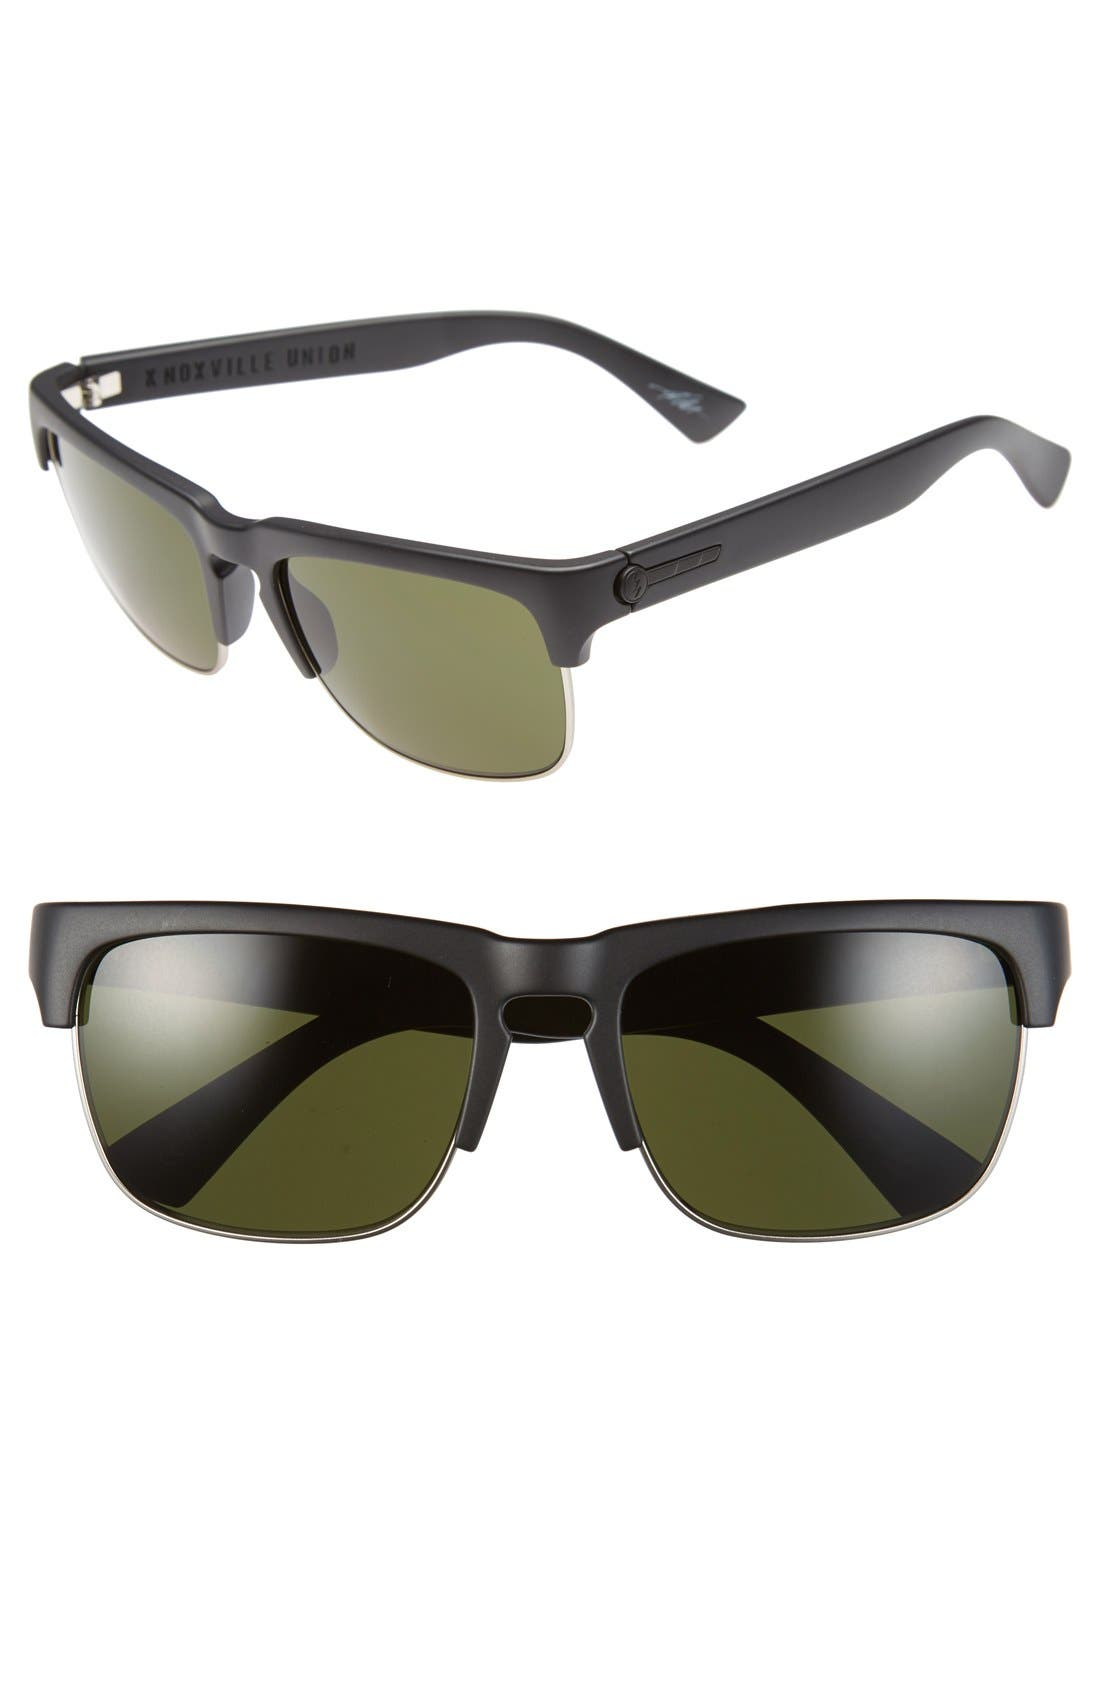 'Knoxville Union' 55mm Sunglasses,                         Main,                         color, Matte Black/ Grey